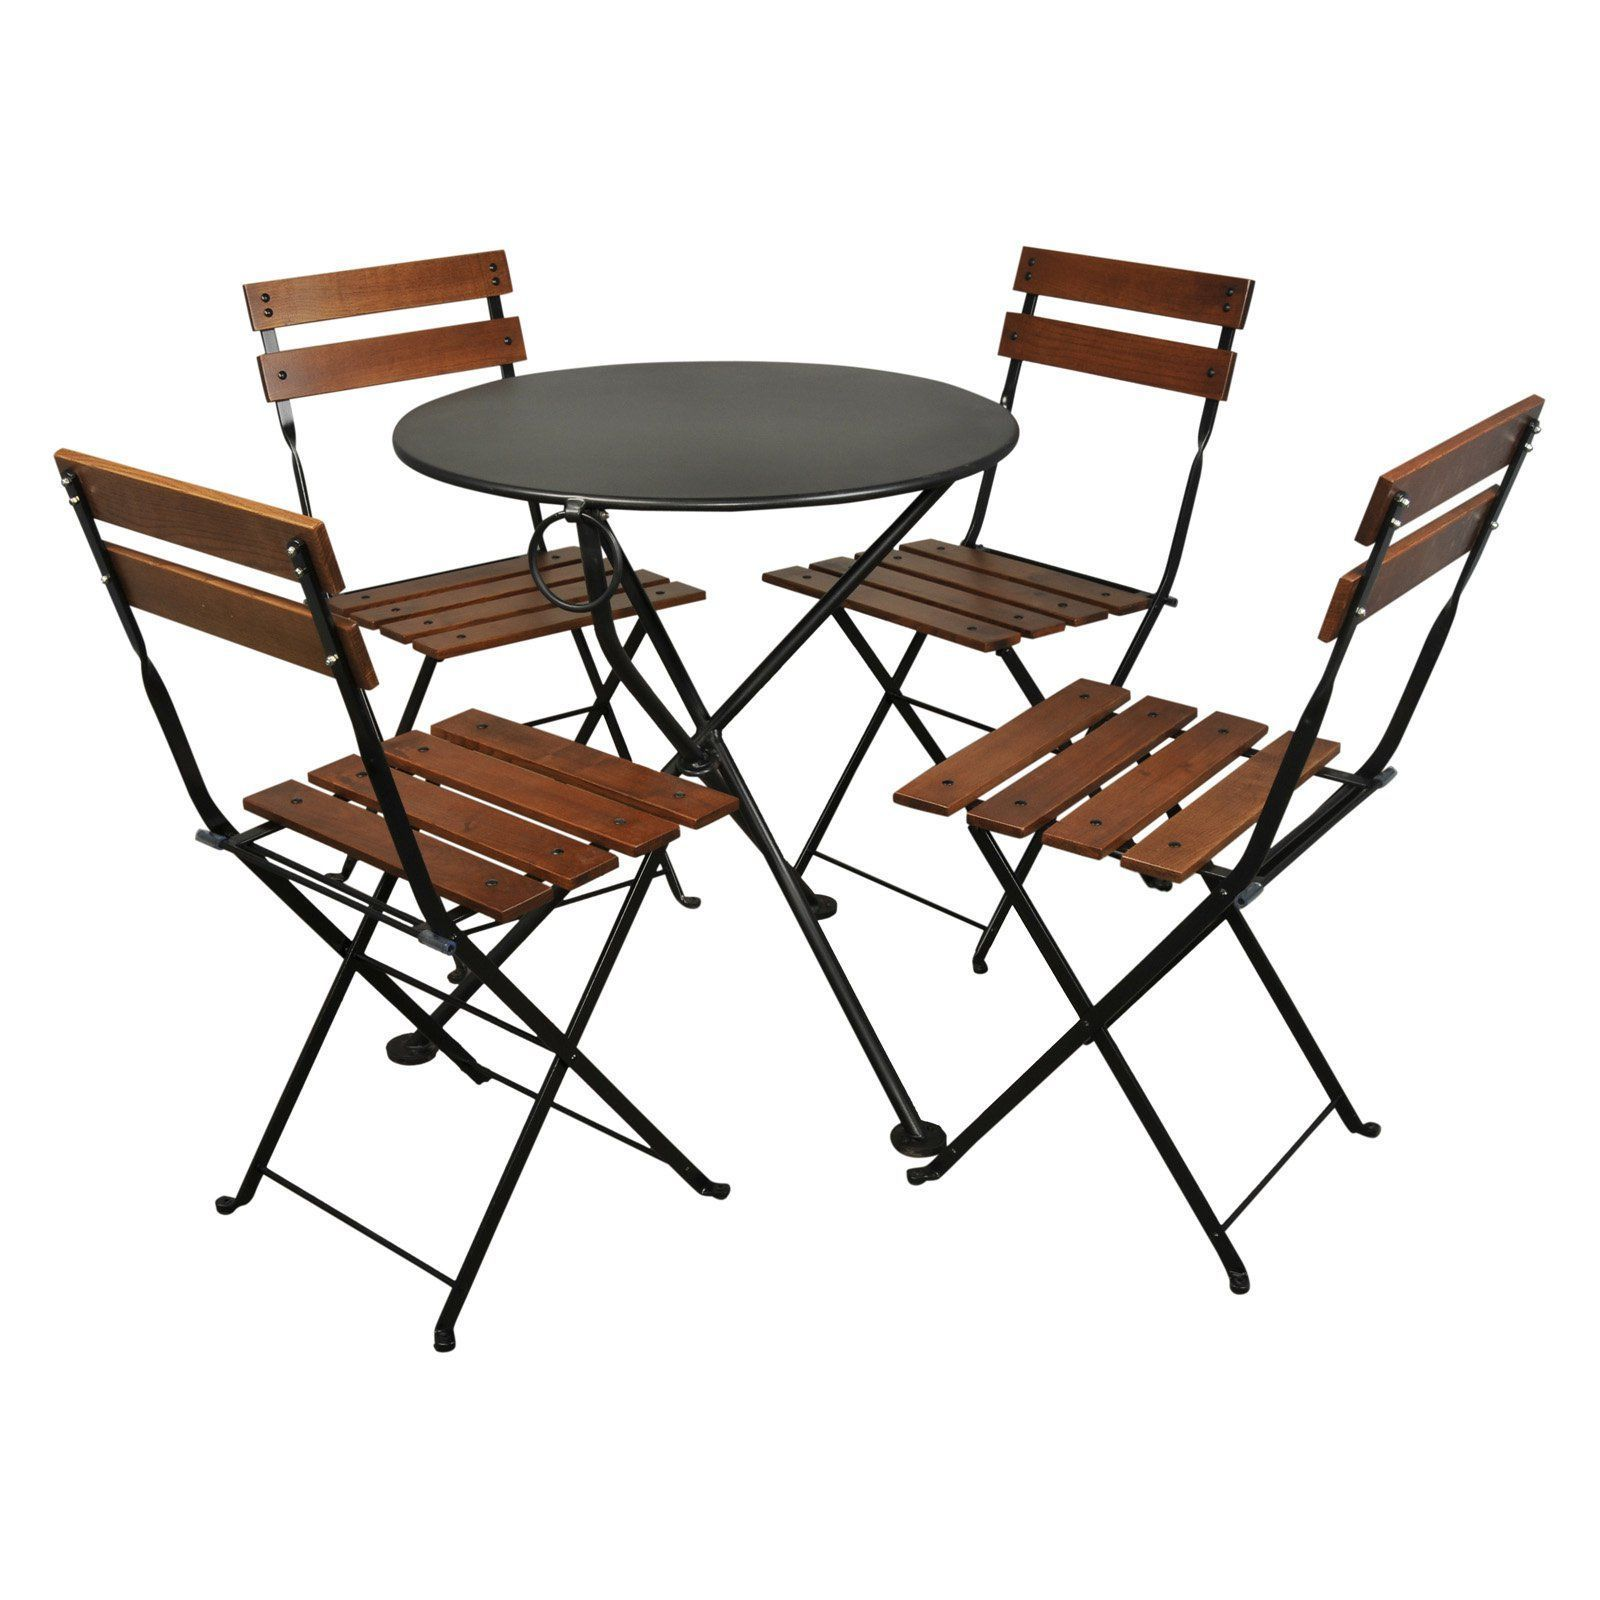 Outdoor furniture designhouse french cafe bistro chestnut wood